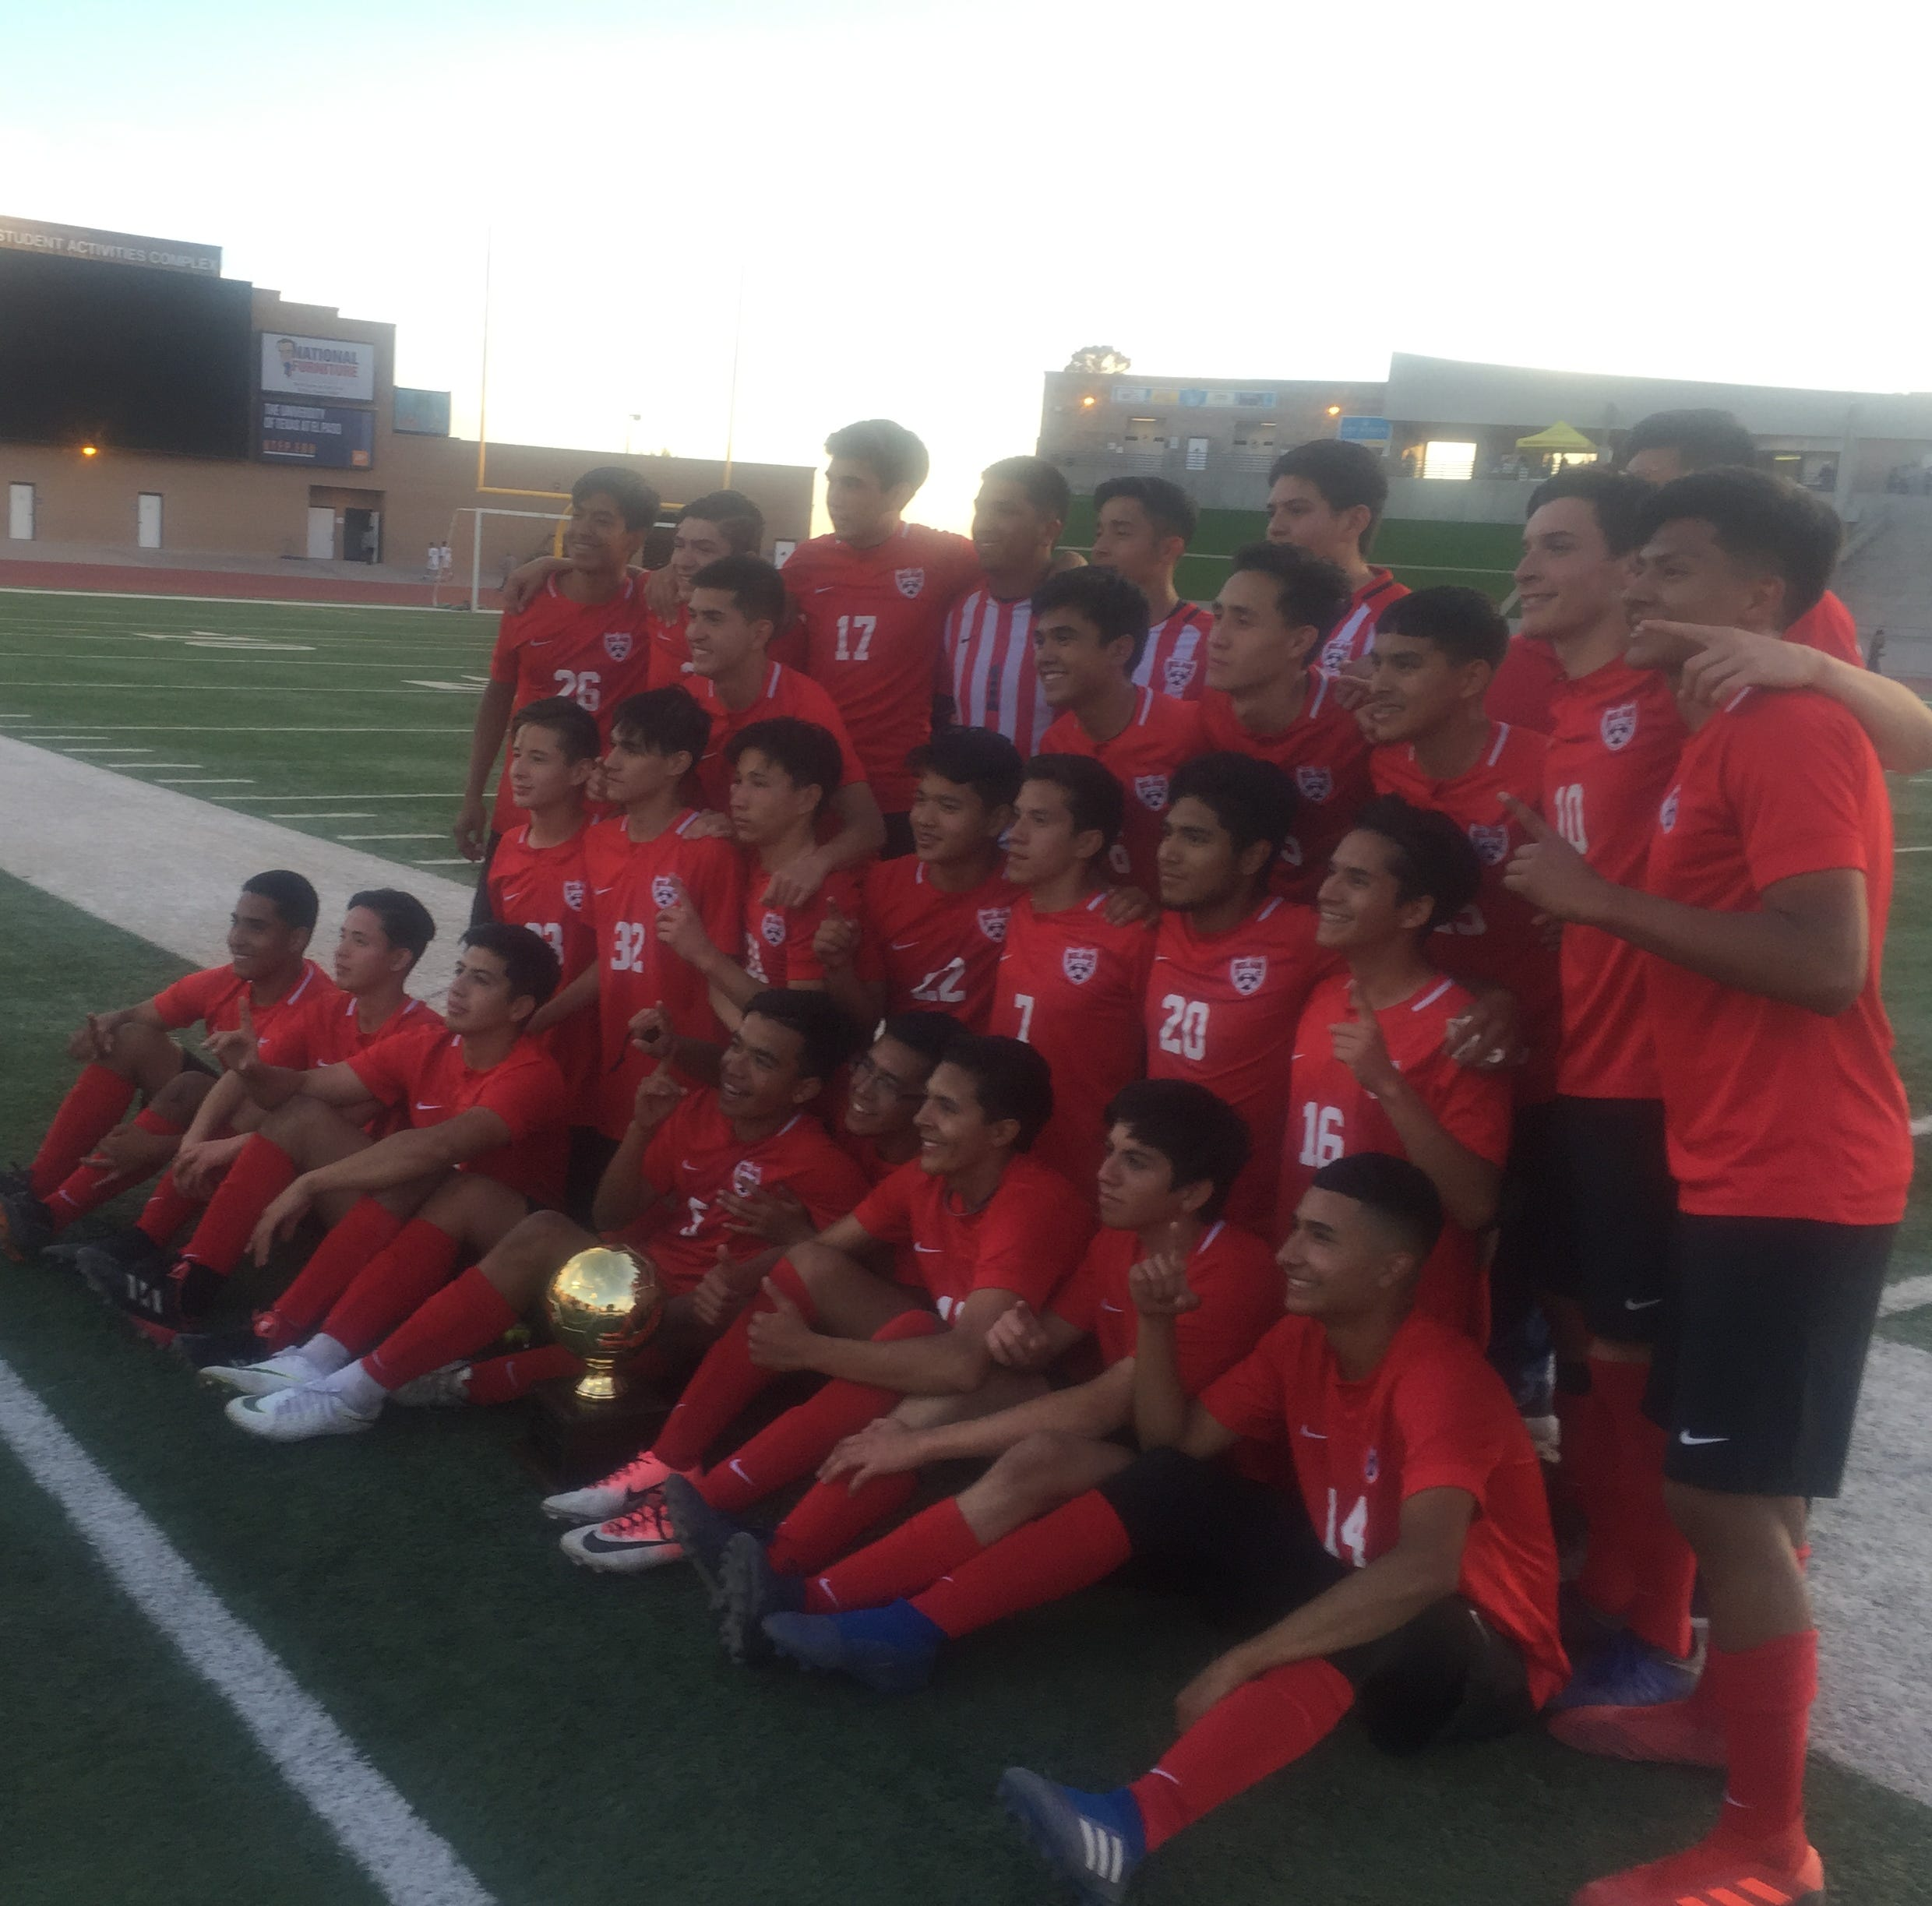 Bel Air, San Elizario boys soccer teams are examples of hard work, good character